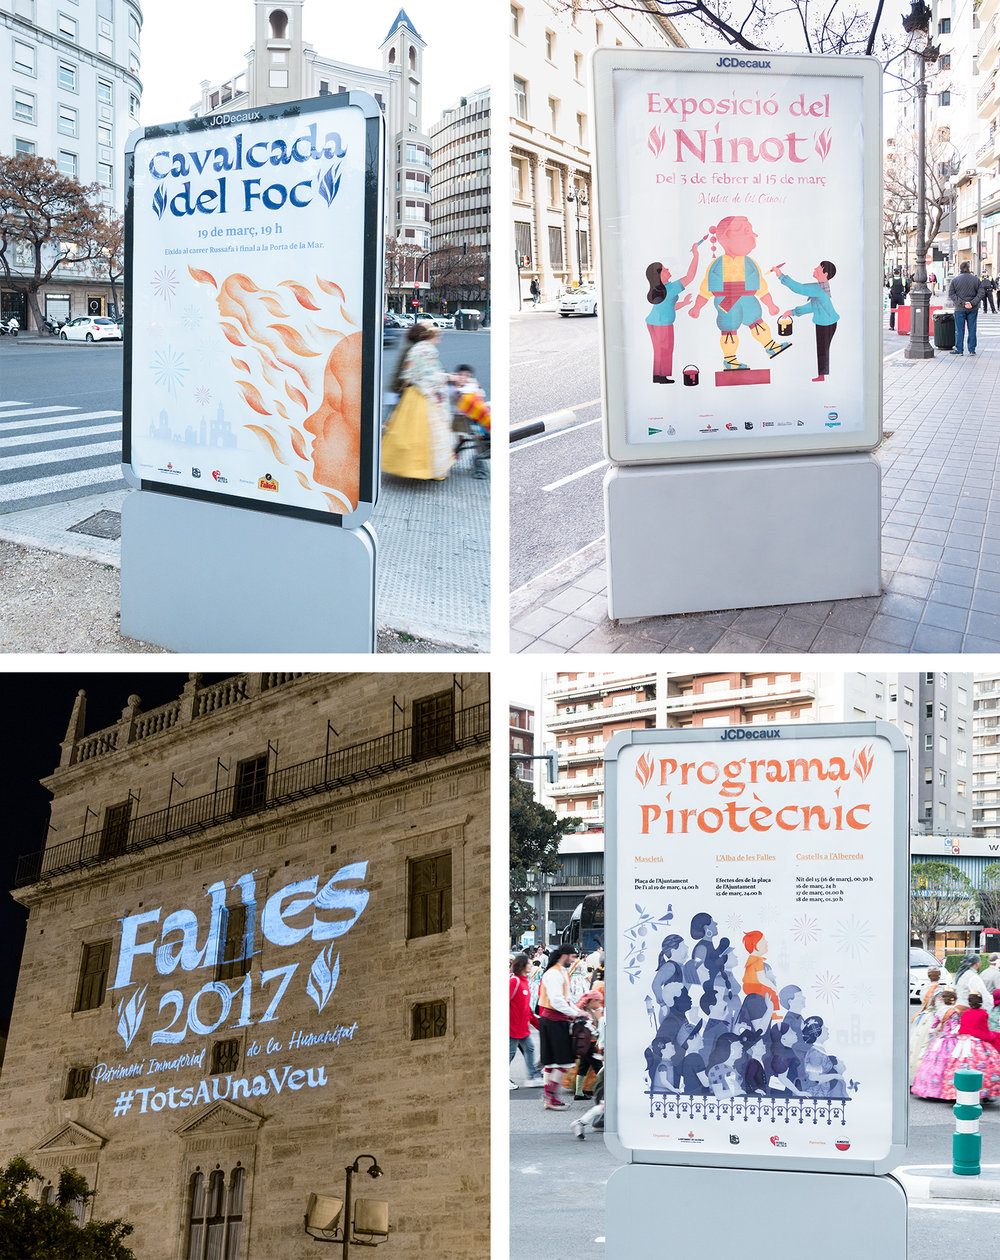 Poster-applications-falles-2017-valencia.jpg